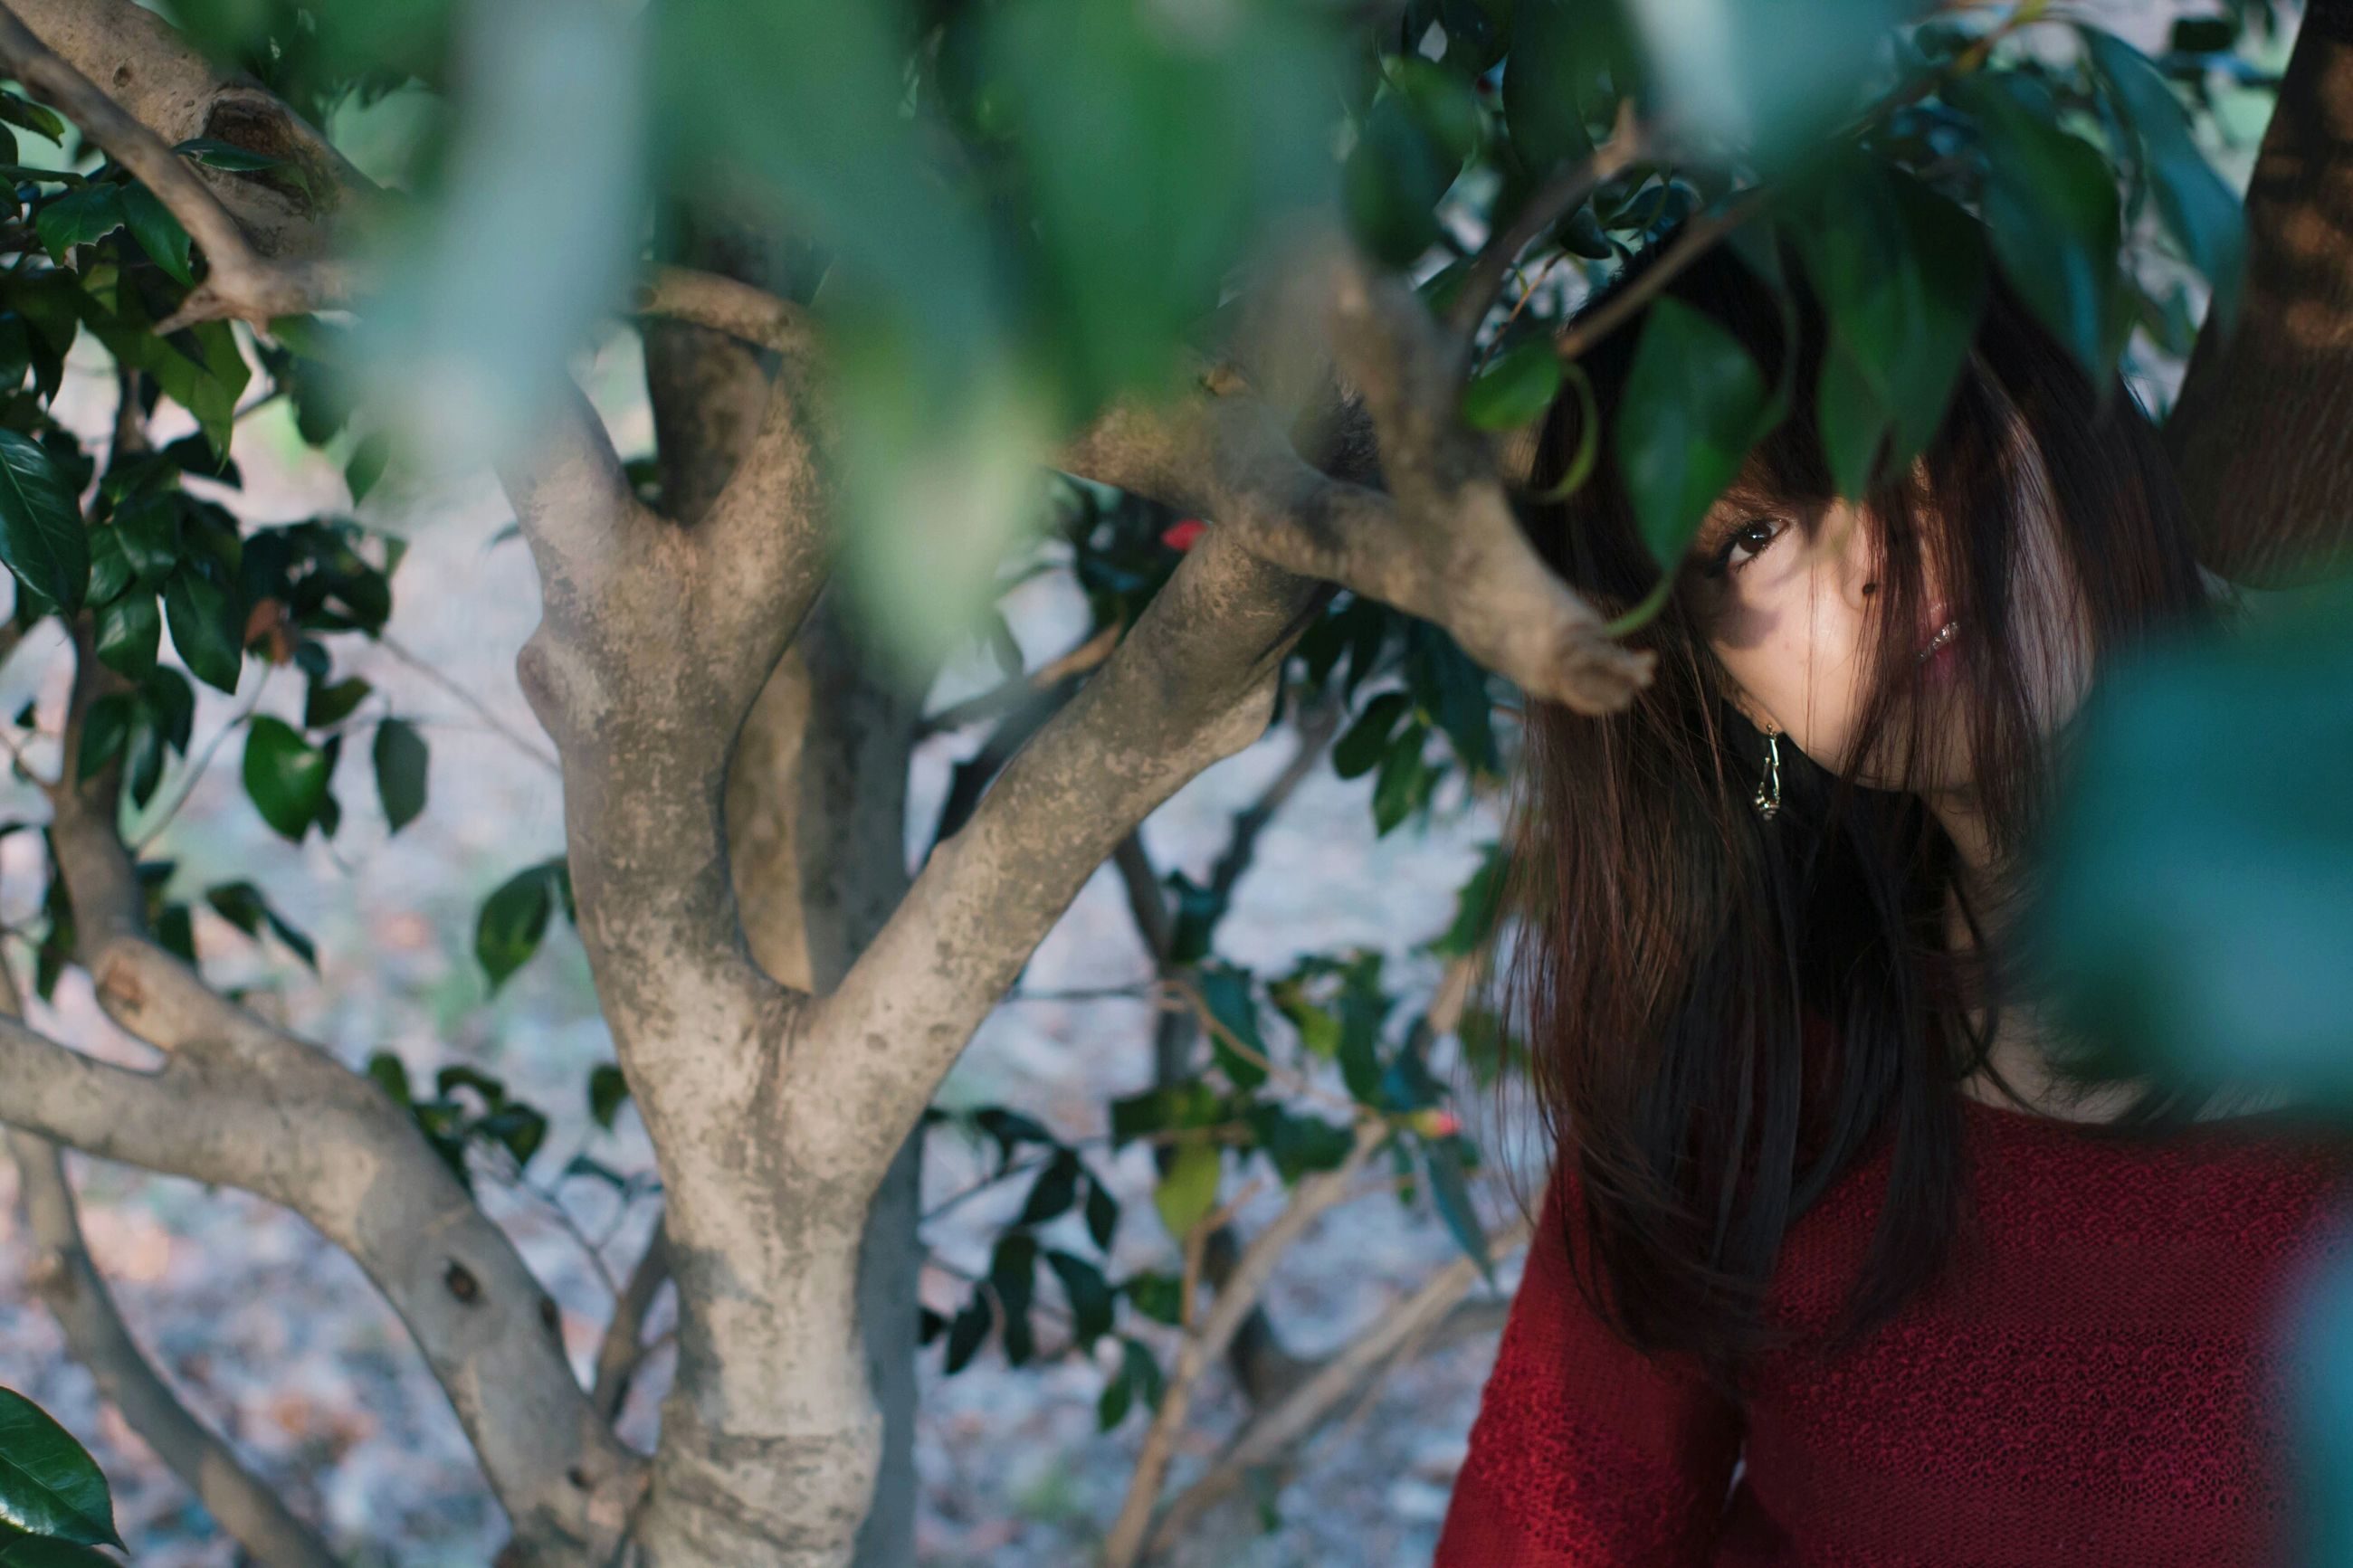 tree, one person, headshot, leaf, branch, day, real people, close-up, one woman only, adults only, nature, outdoors, people, young adult, adult